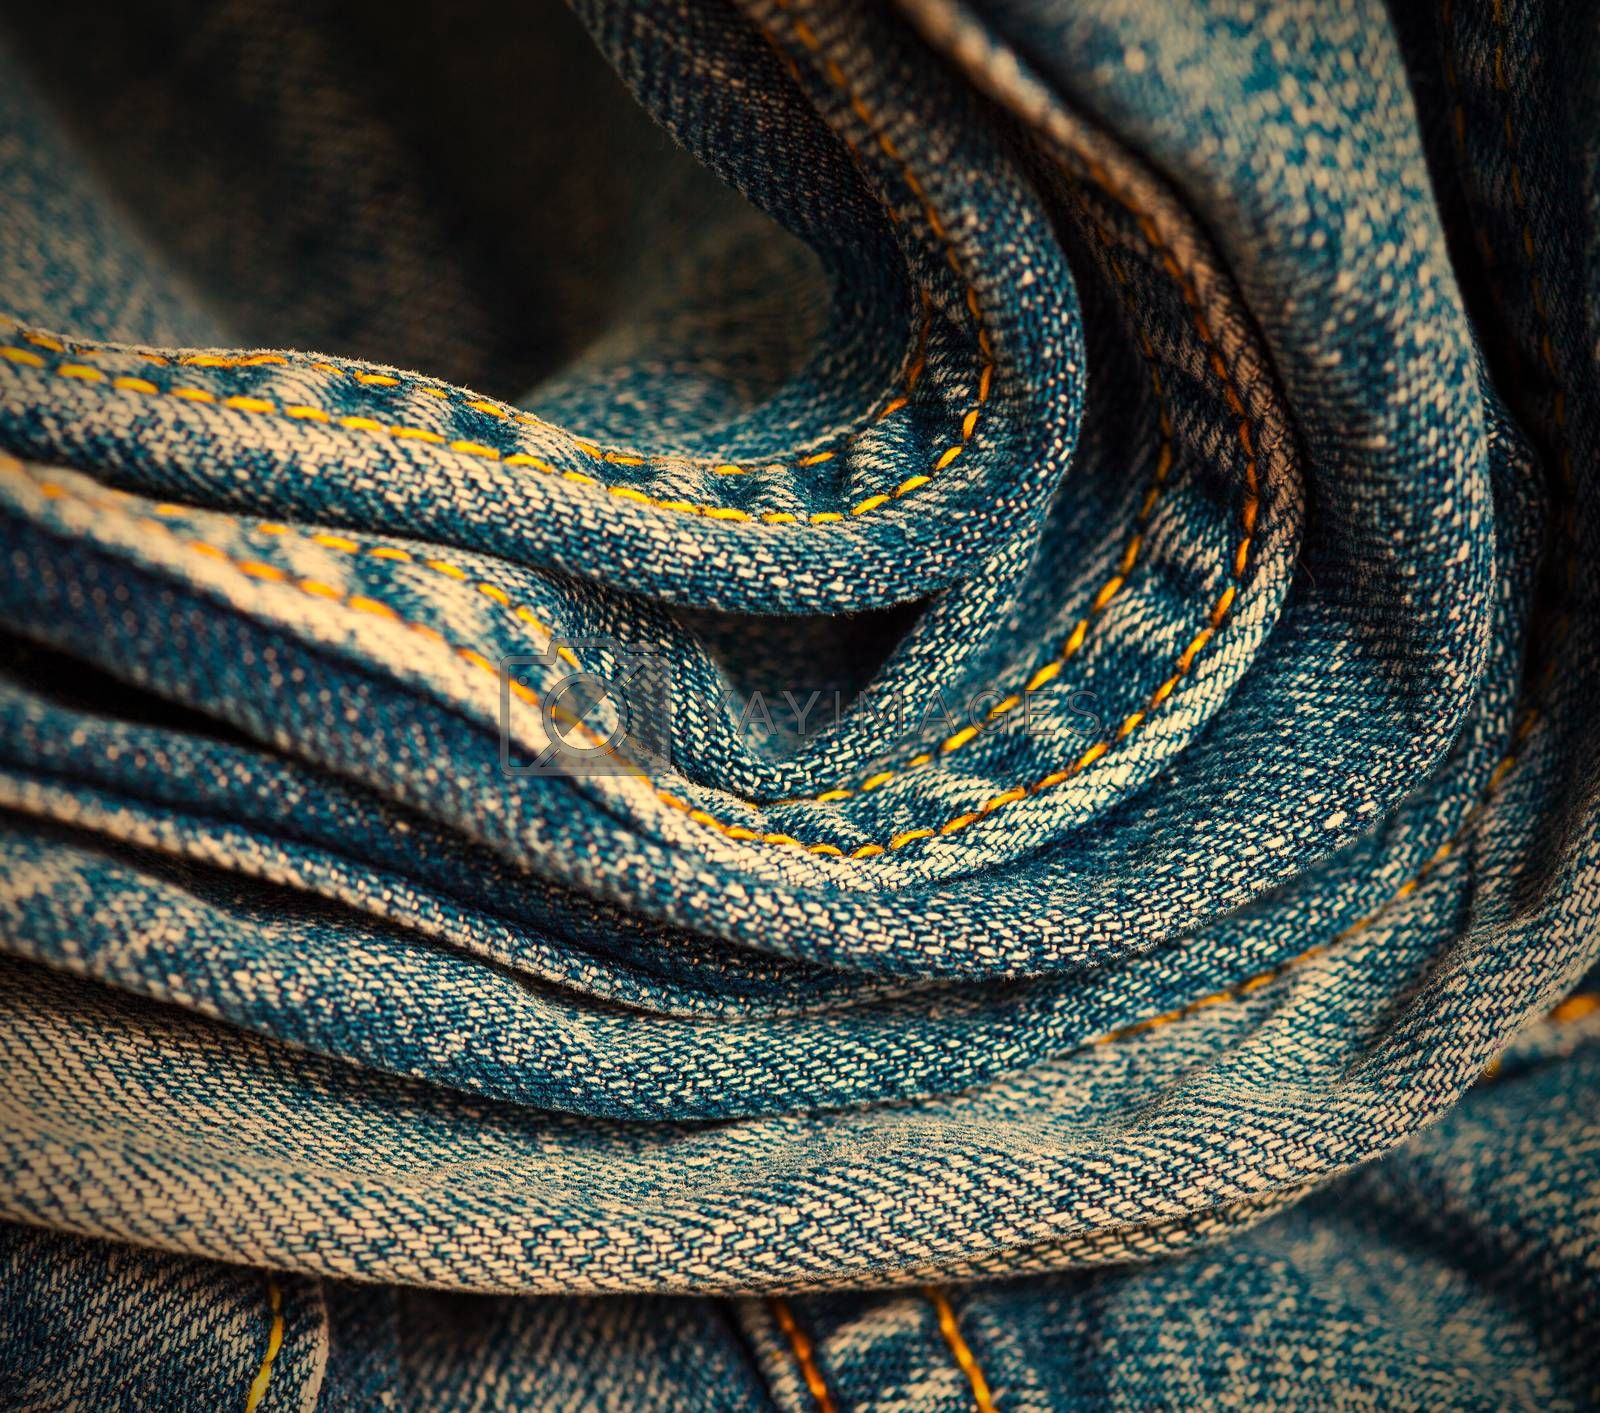 aged blue jeans with seams,  part of. instagram image retro style